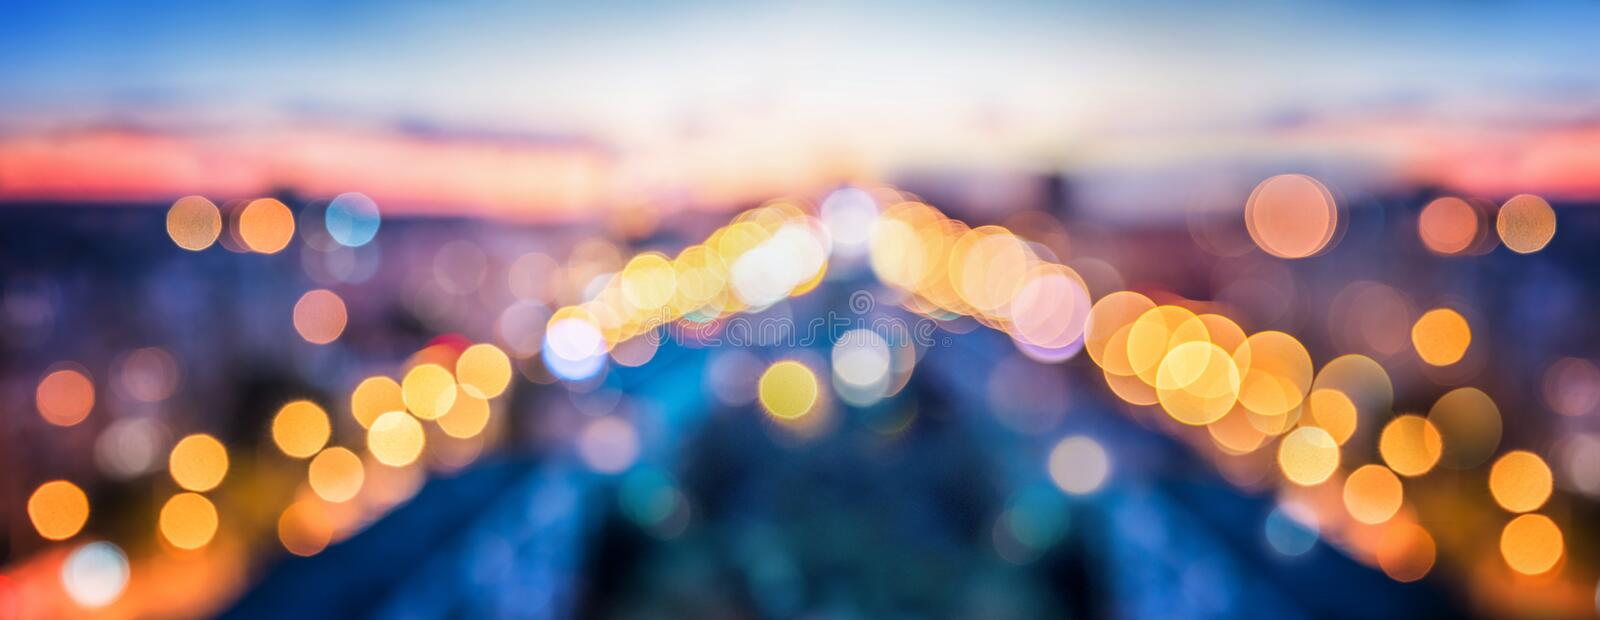 City lights in the evening blurring background stock photography